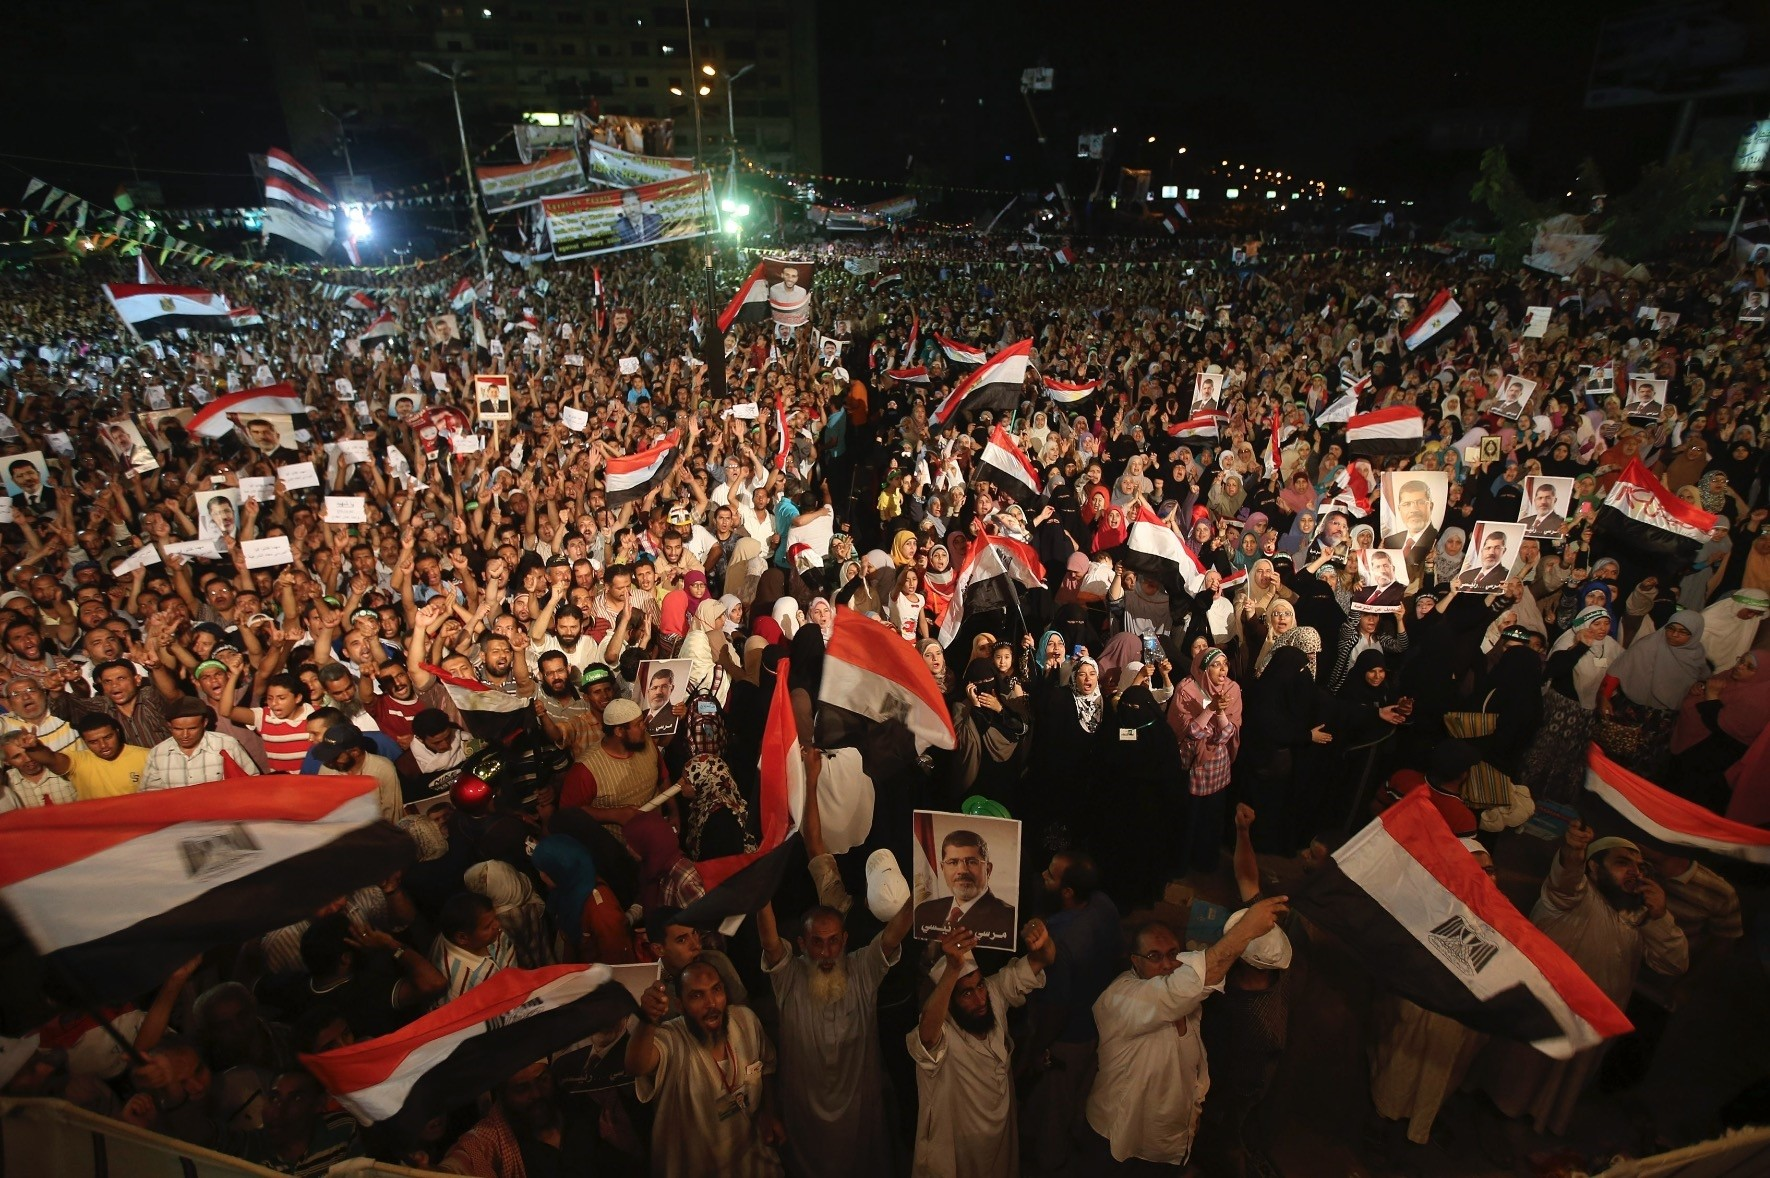 Supporters of Egyptu2019s first democratically elected President Mohammed Morsi hold his portraits and wave flags in Cairo, July 10, 2013 a month before Egyptian military tanks ran over protestors in Tahrir square.